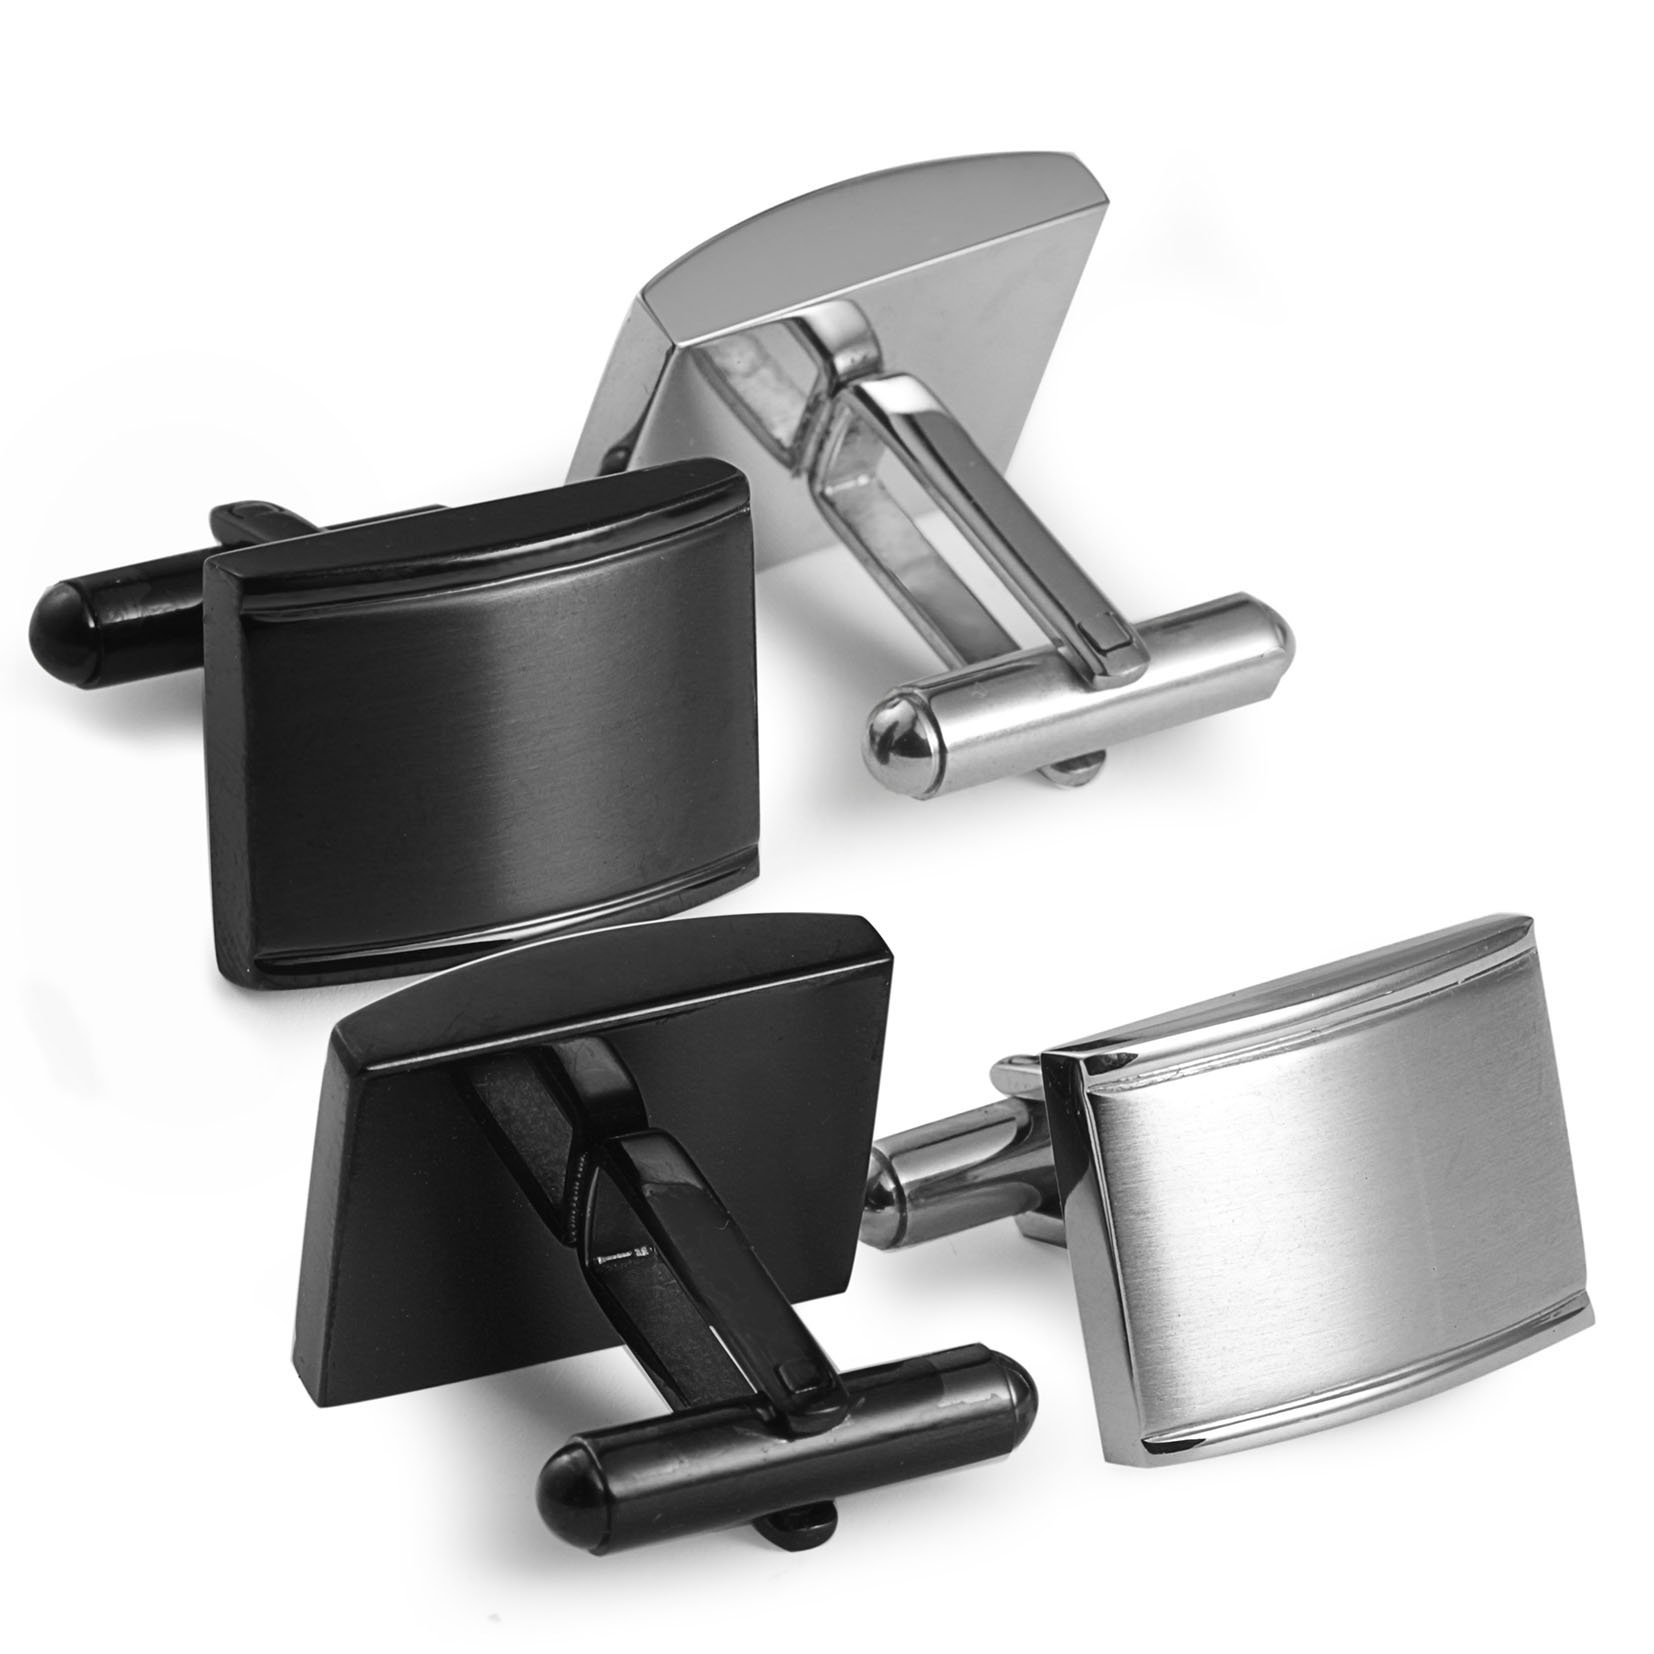 Jstyle Jewelry Stainless Steel Cufflinks for Men 2 Pairs a Set Unique Business Wedding